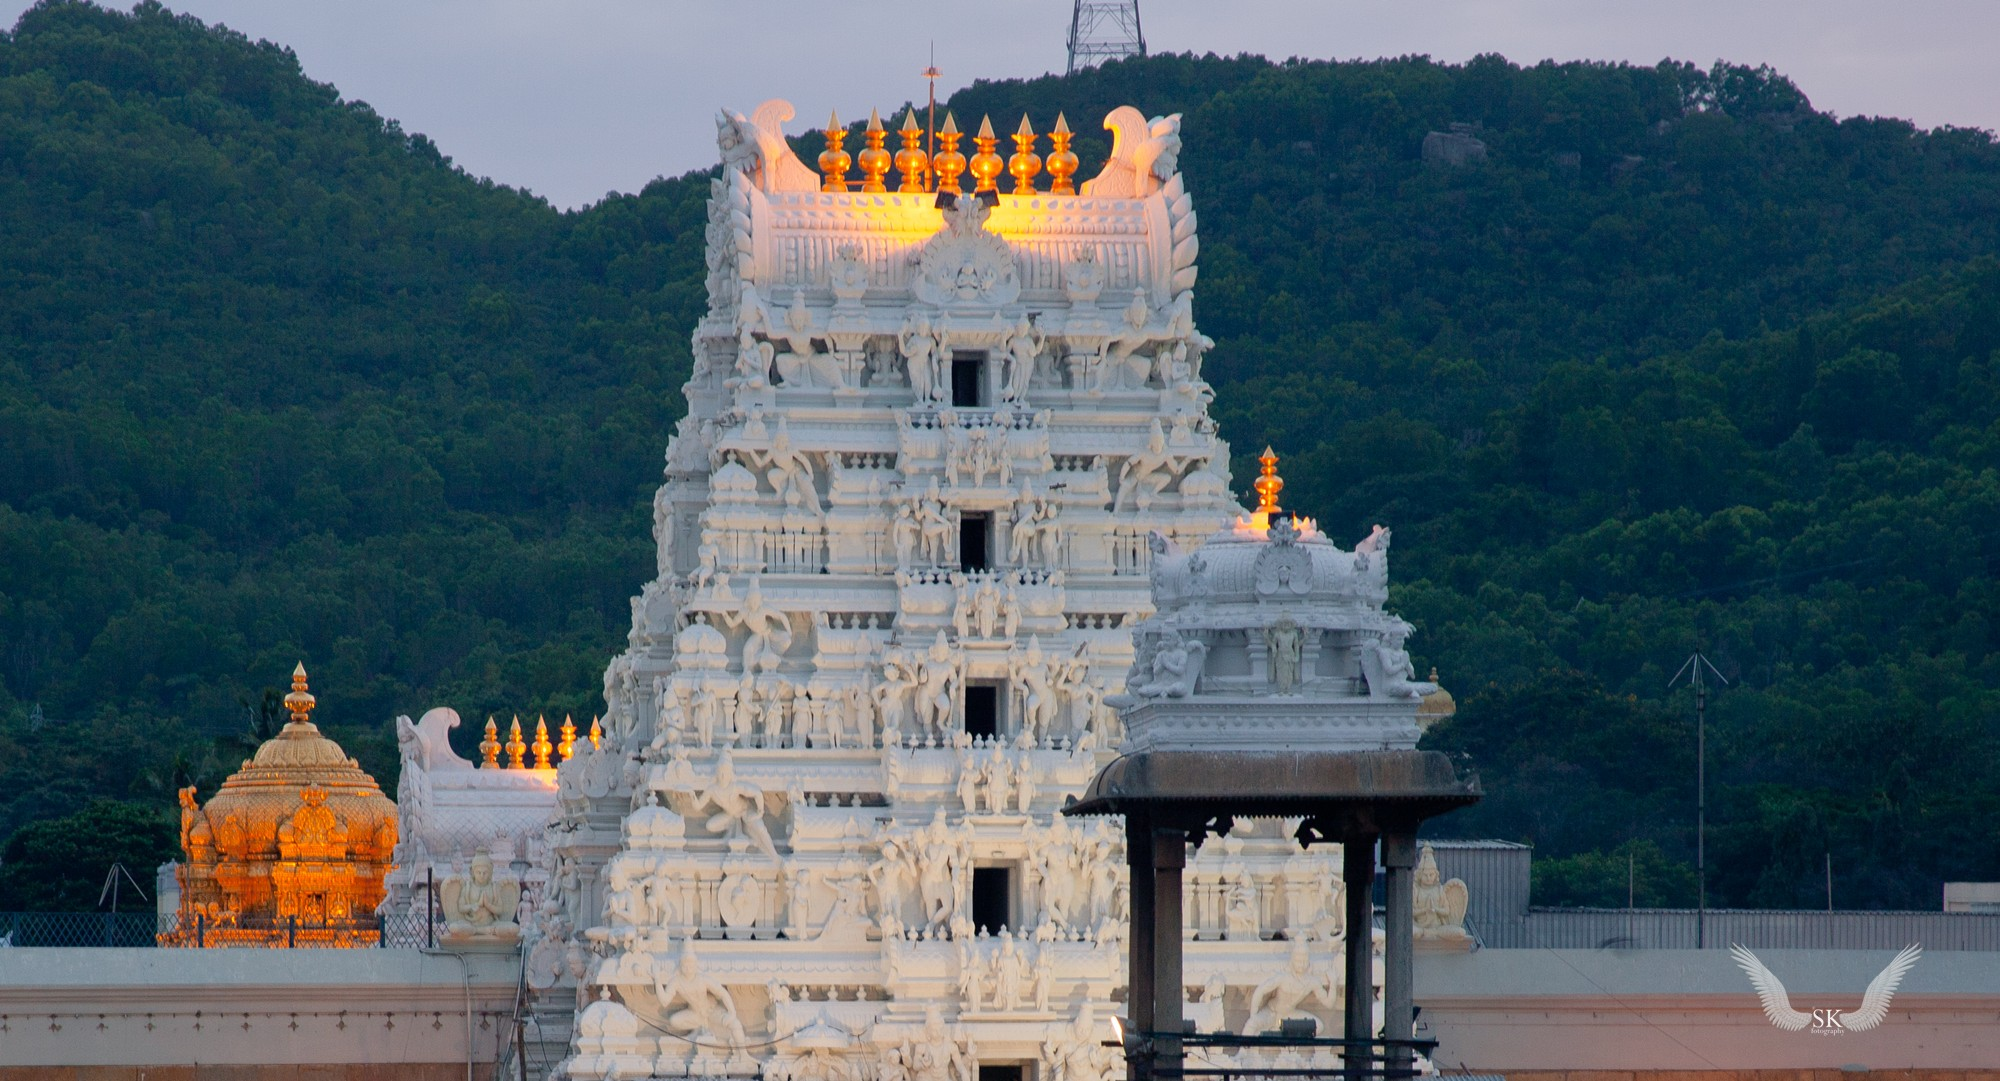 hd world map download with Tirumala Venkateswara Temple on 15061215328 together with 16392 Desktop Wallpapers Middle East as well Large Australia Map further Tirumala Venkateswara Temple as well .